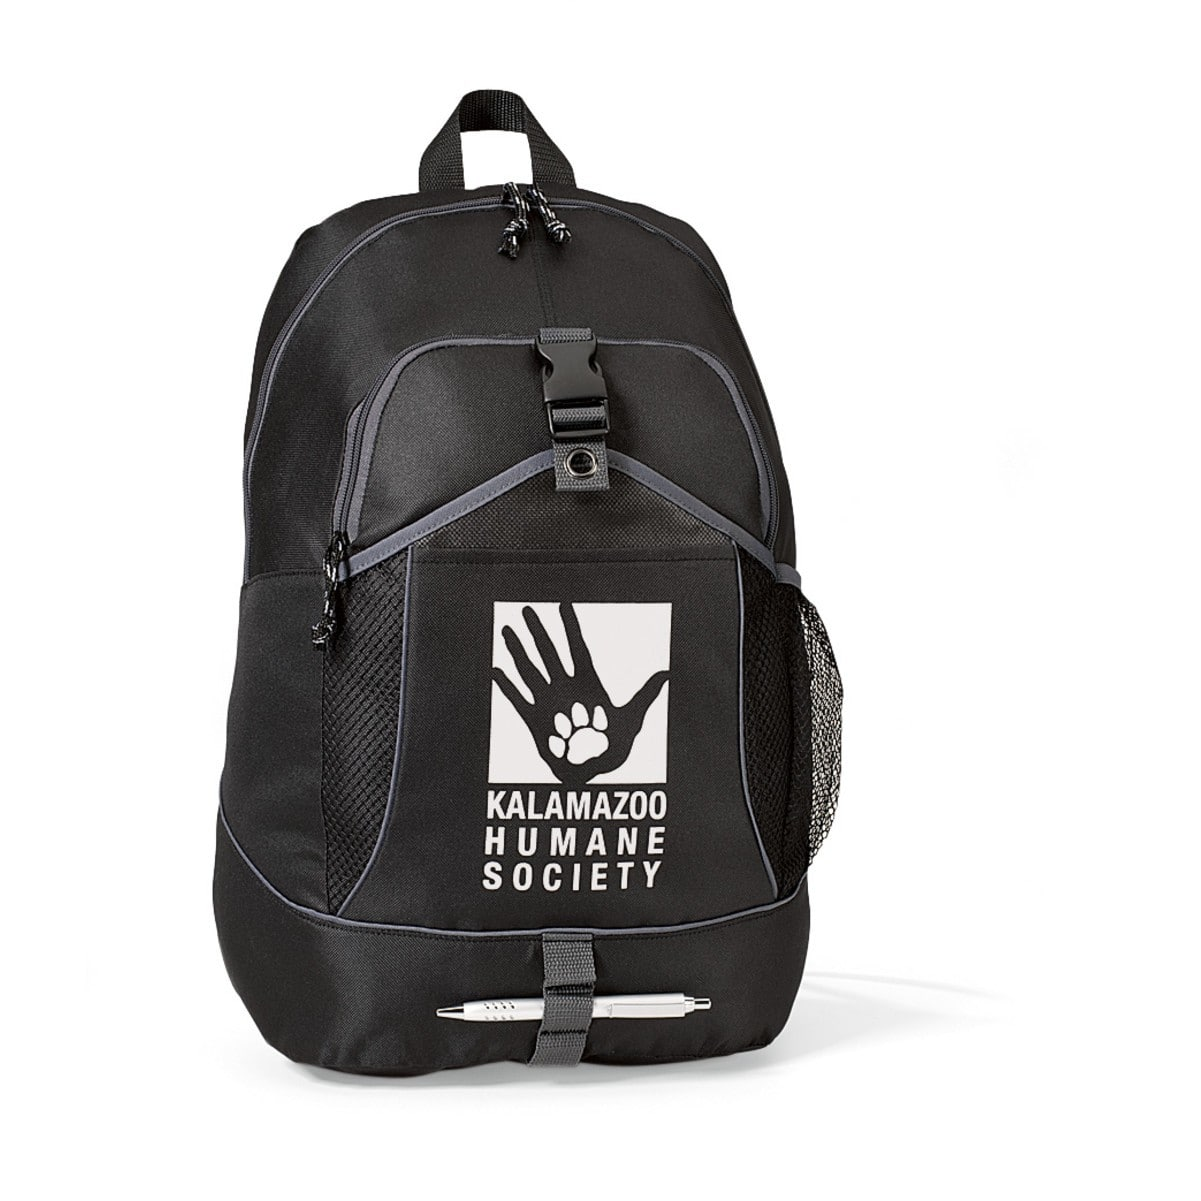 600D custom printed school backpack with logo